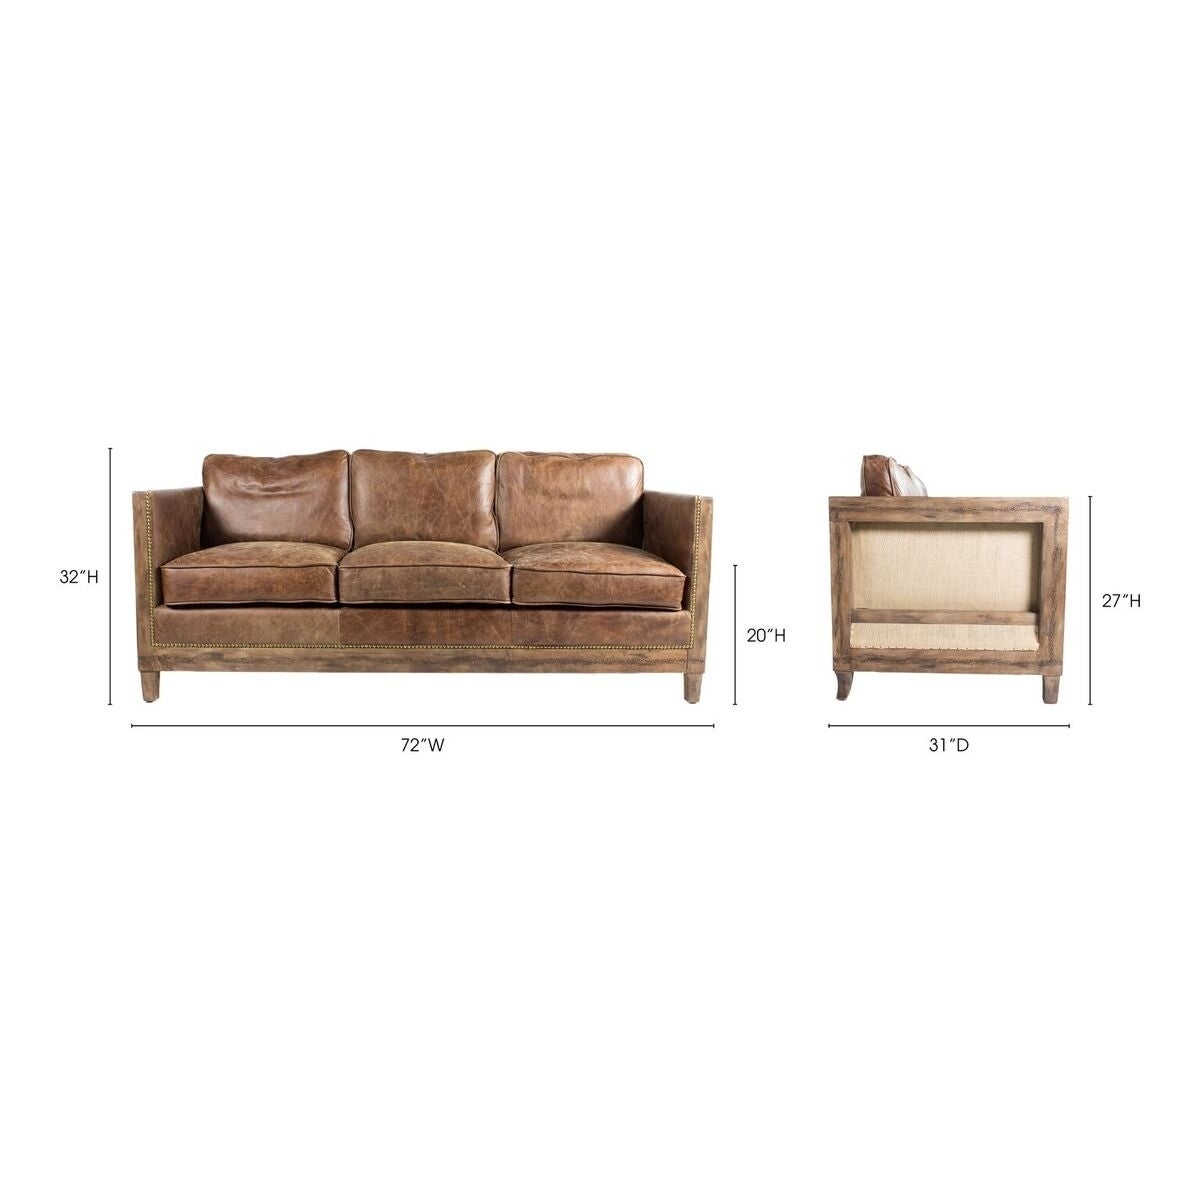 Aurelle Home Monarchy Rustic Distressed Leather Sofa On Free Shipping Today 9487380